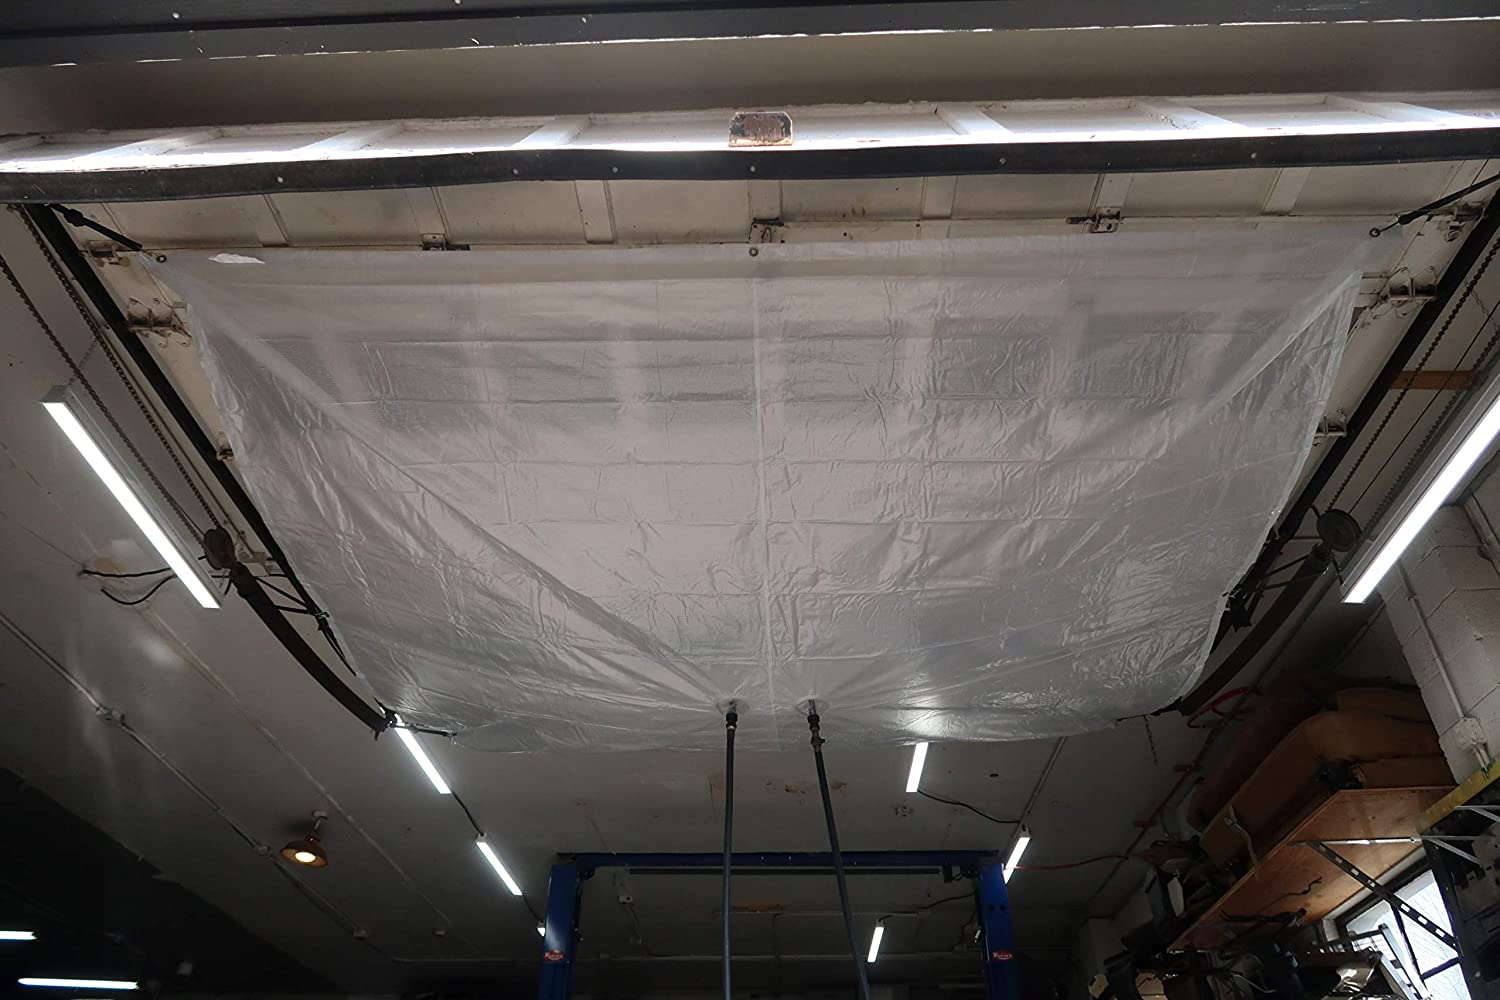 Portland Mall Roof leak diverter 10' x Divert Tulsa Mall by GoGrailey and Captures